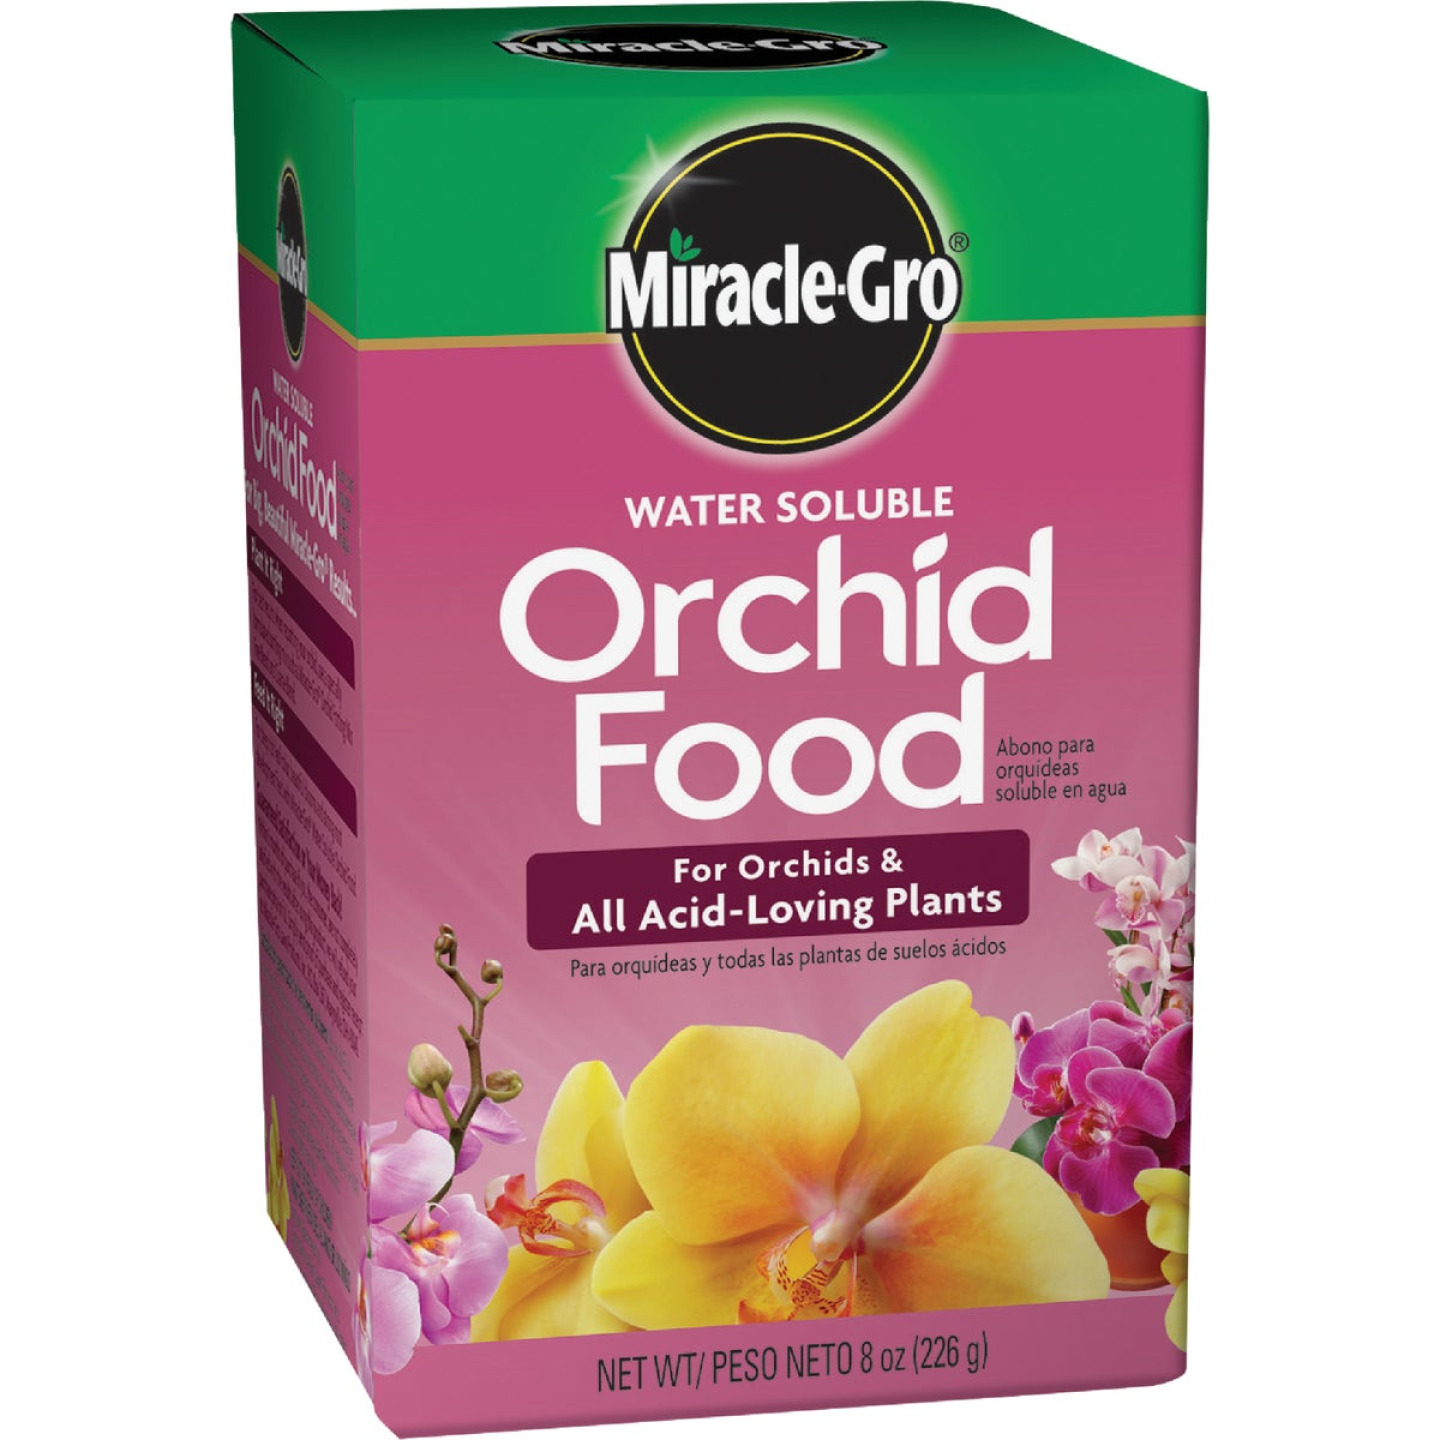 Miracle-Gro 8 Oz. 30-10-10 Orchid Dry Plant Food Image 1